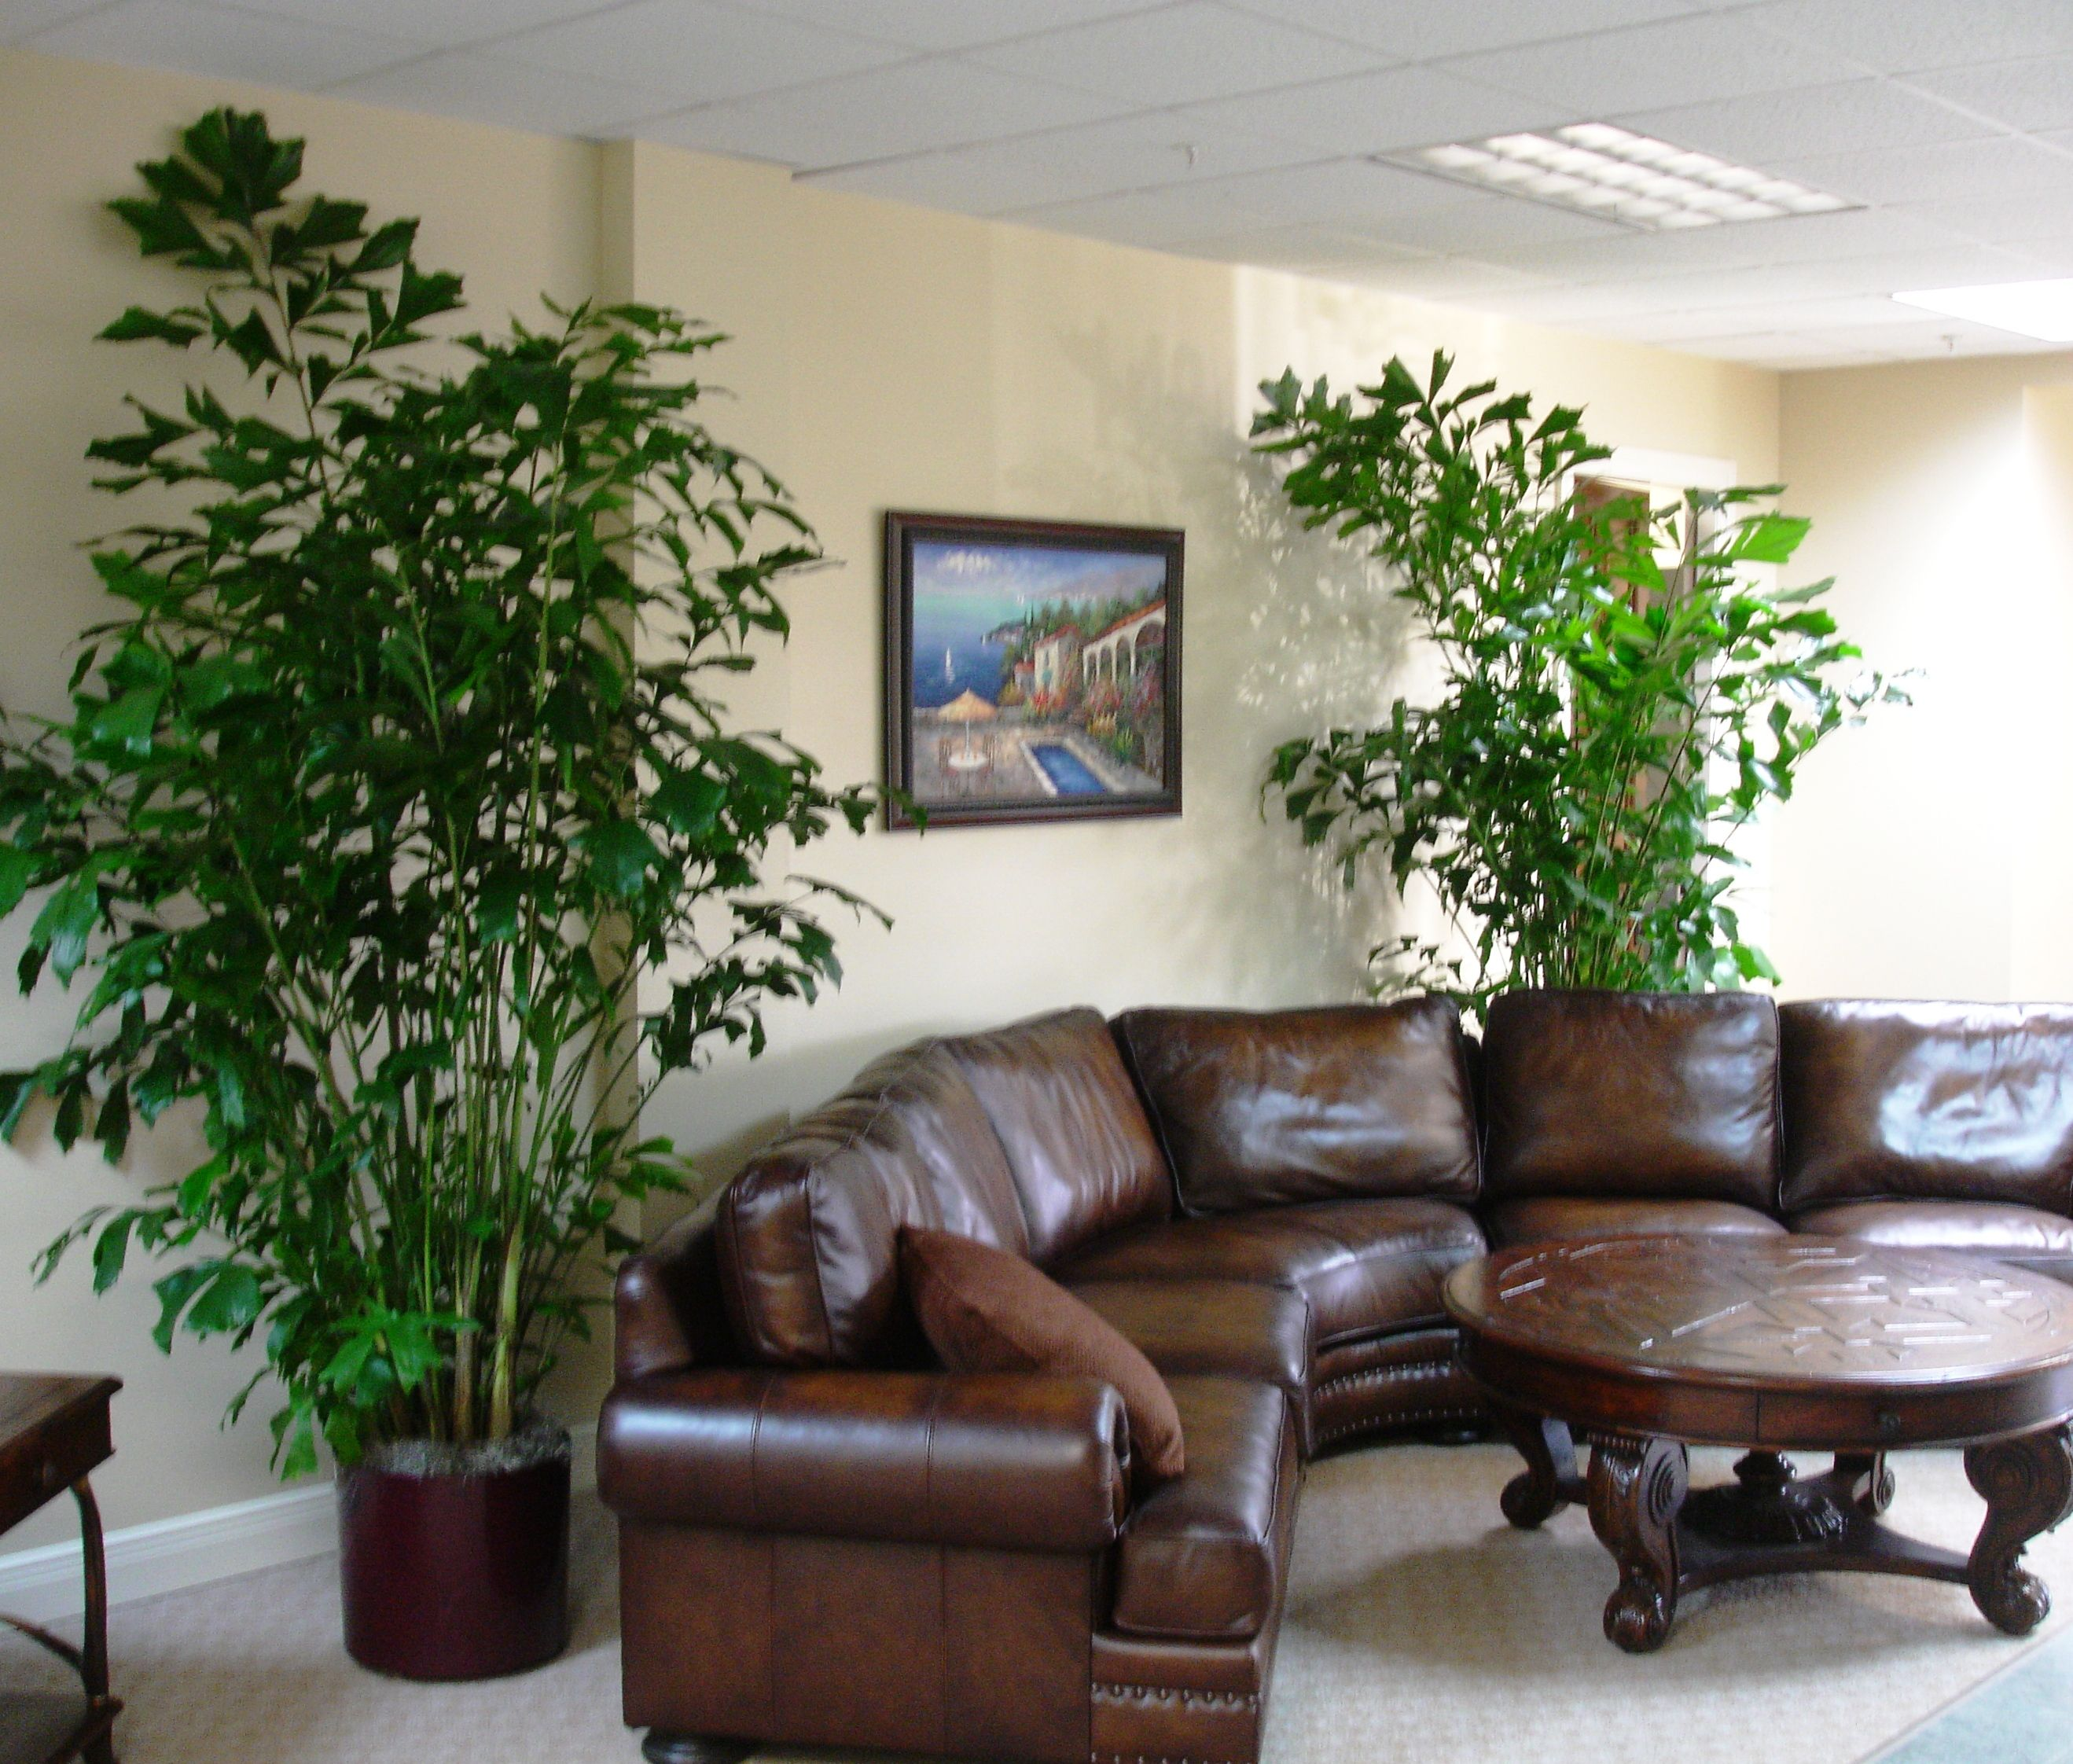 Palm Tree Decor For Living Room Fishtail Palms Do Very Well Indoors These Soften Up A Masculine